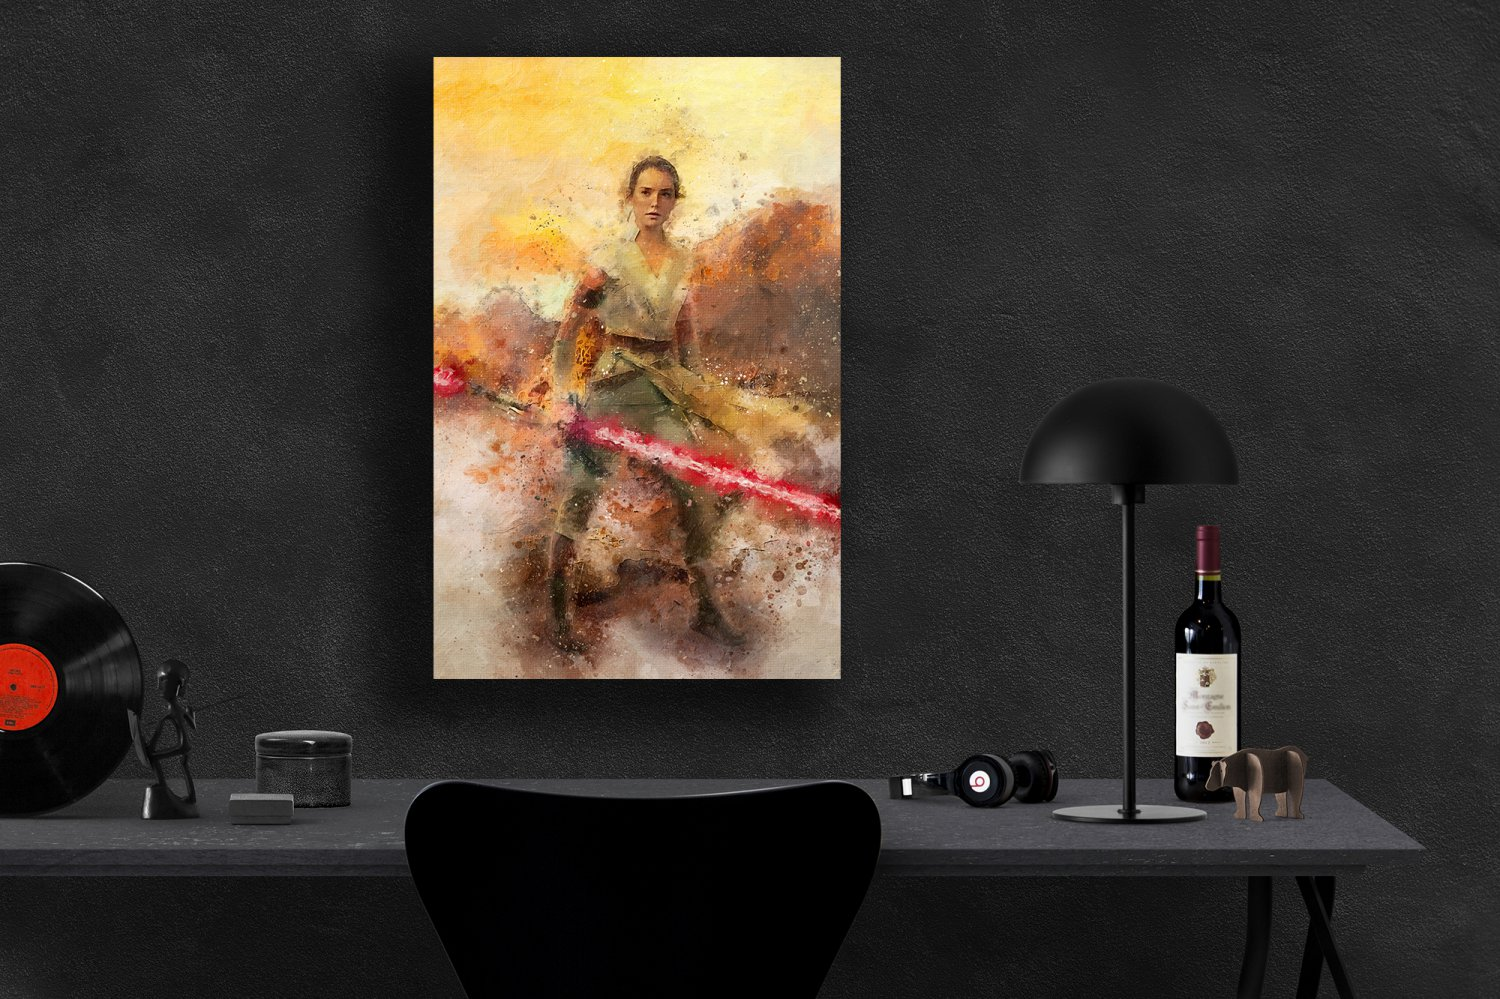 Star Wars, Rey, Daisy Ridley, The Rise of Skywalker  18x28 inches Poster Print